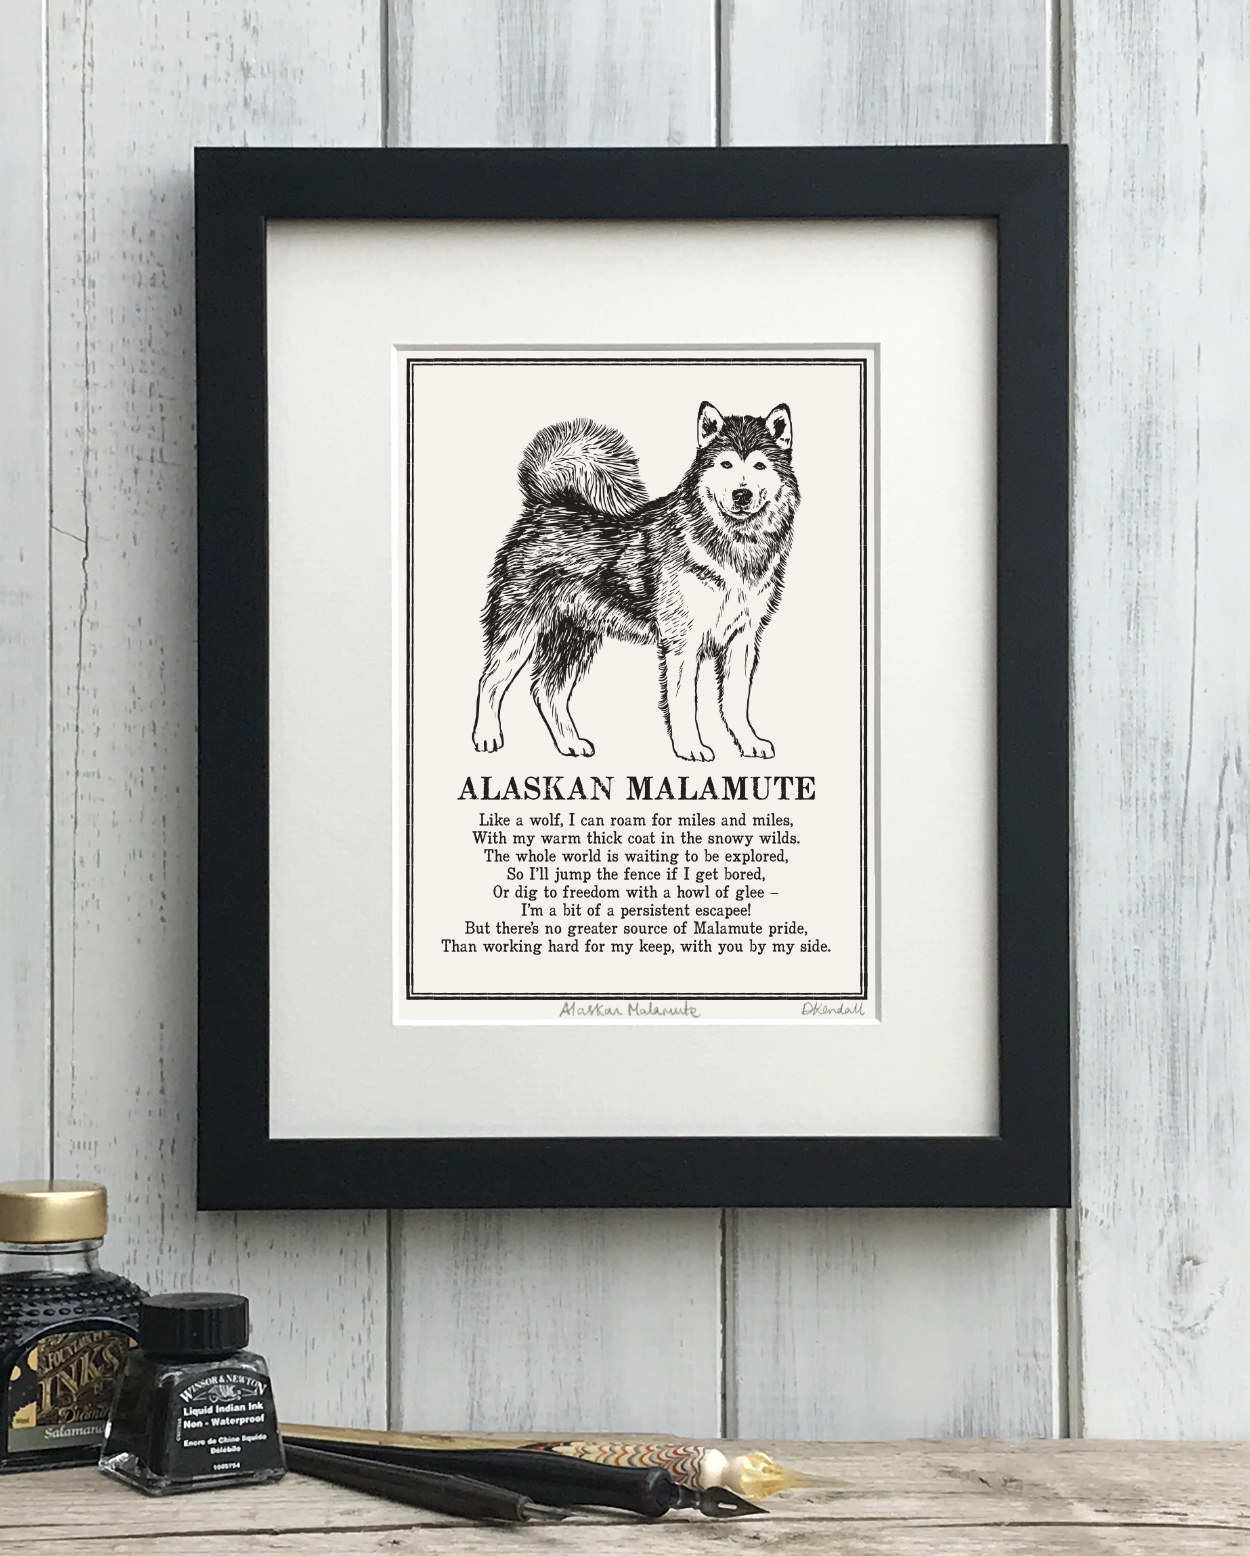 Alaskan Malamute Doggerel Illustrated Poem Art Print | The Enlightened Hound